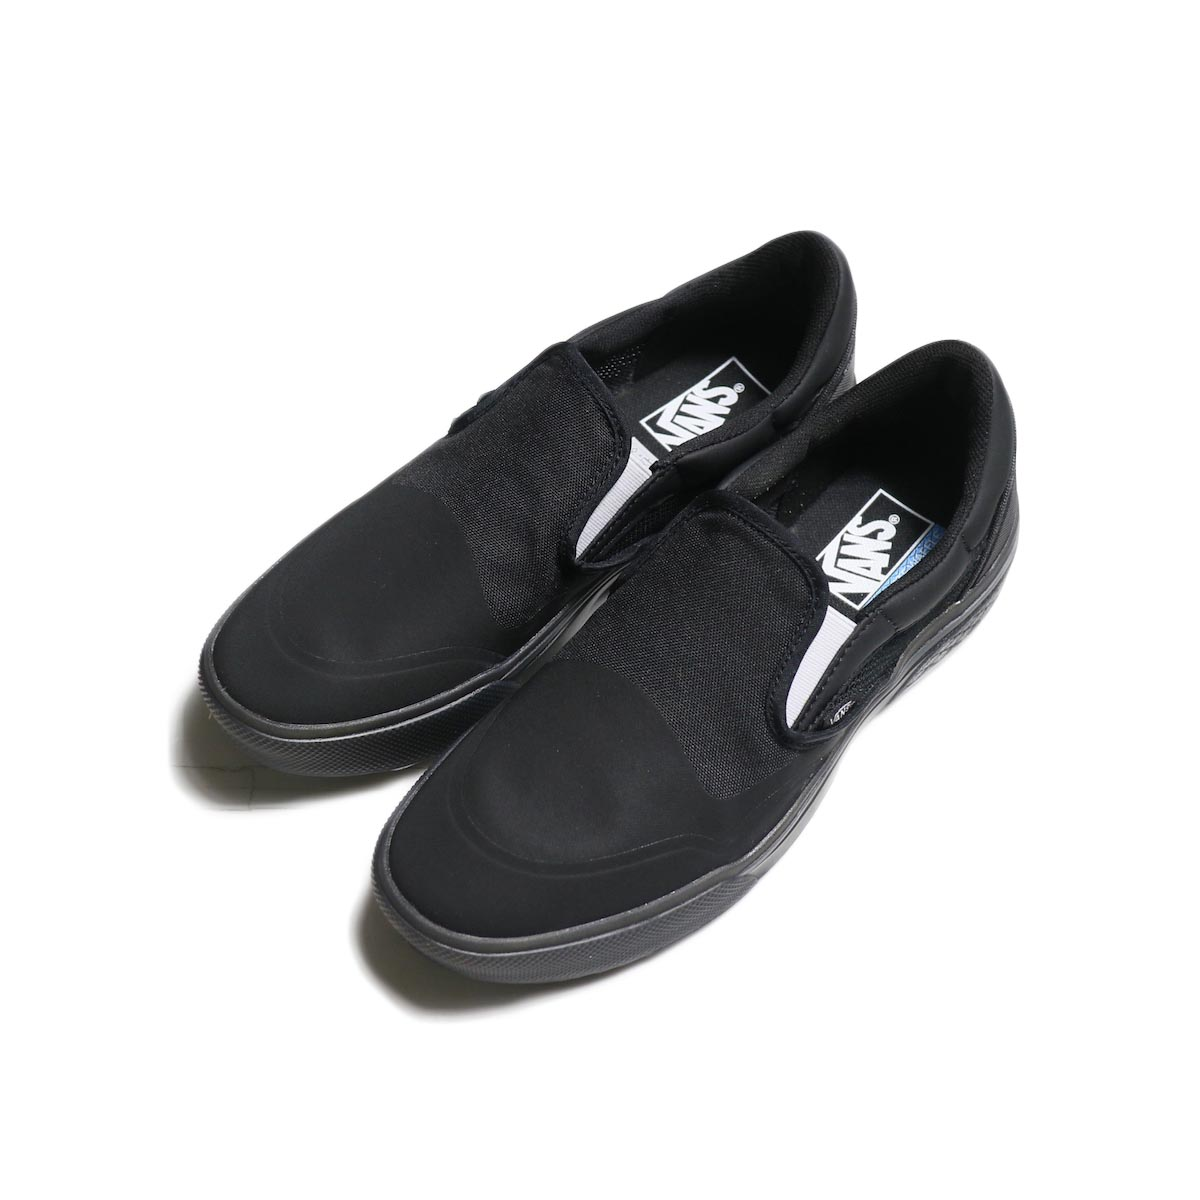 VANS / MOD SLIP-ON (Black/Smoke)